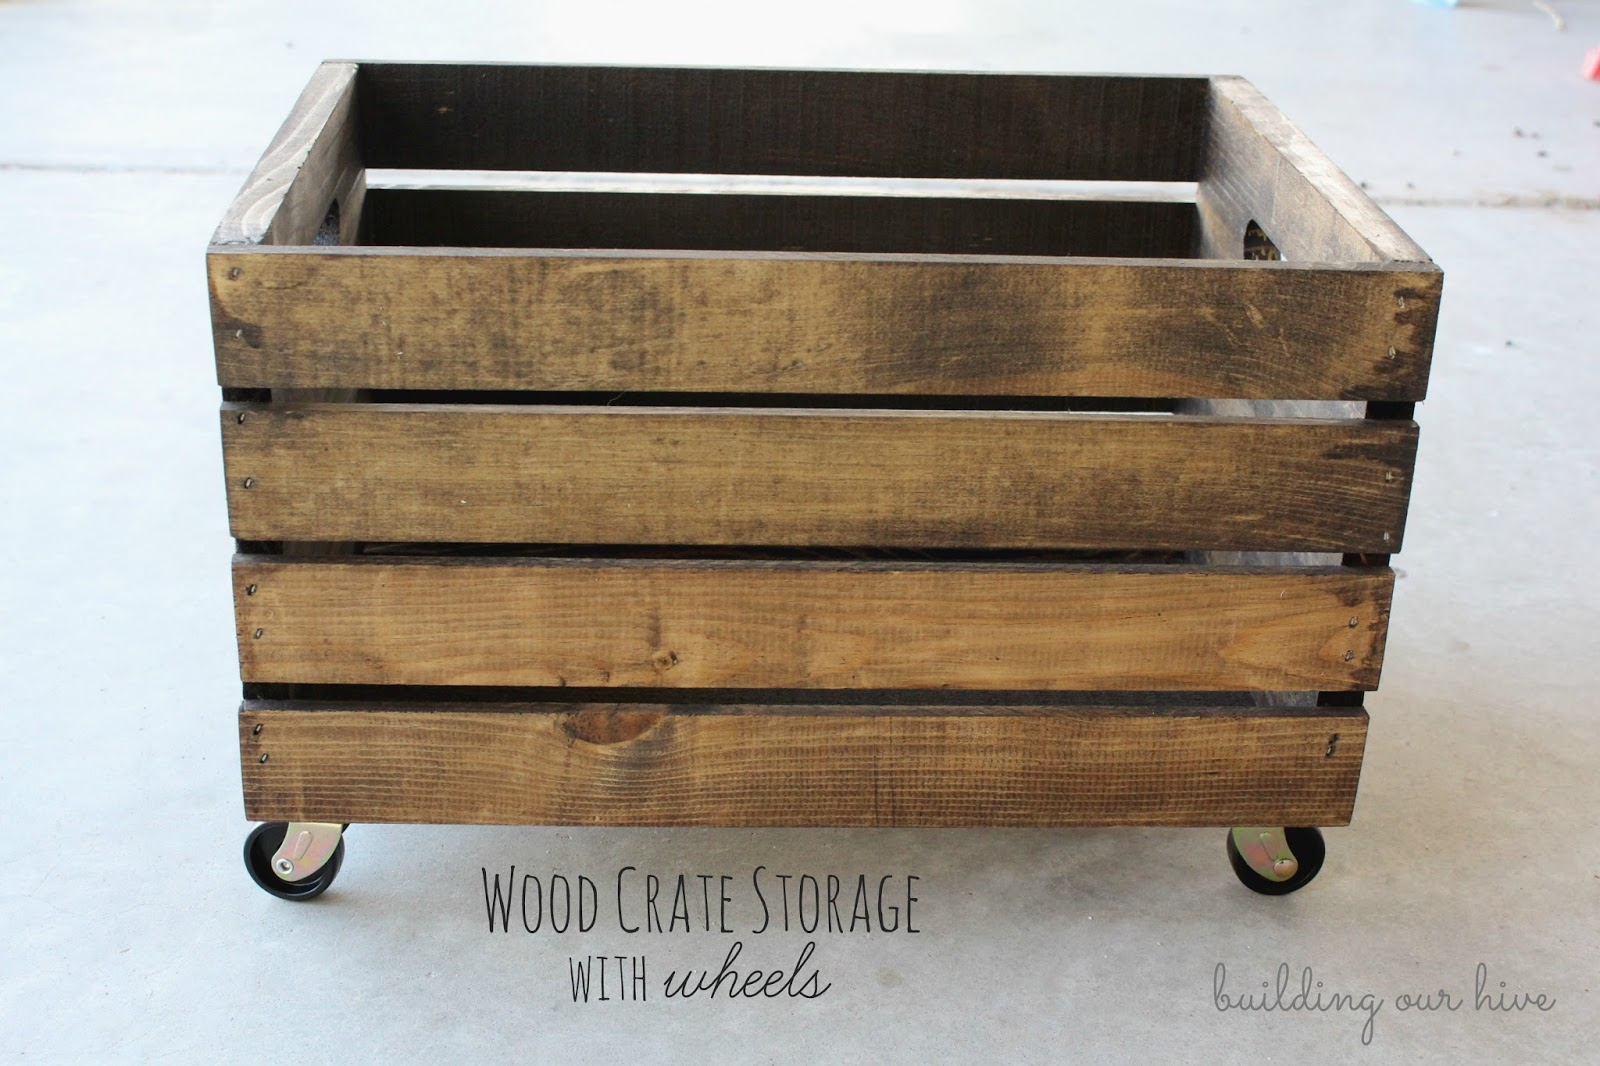 Building Our Hive Wood Crate Storage With Wheels